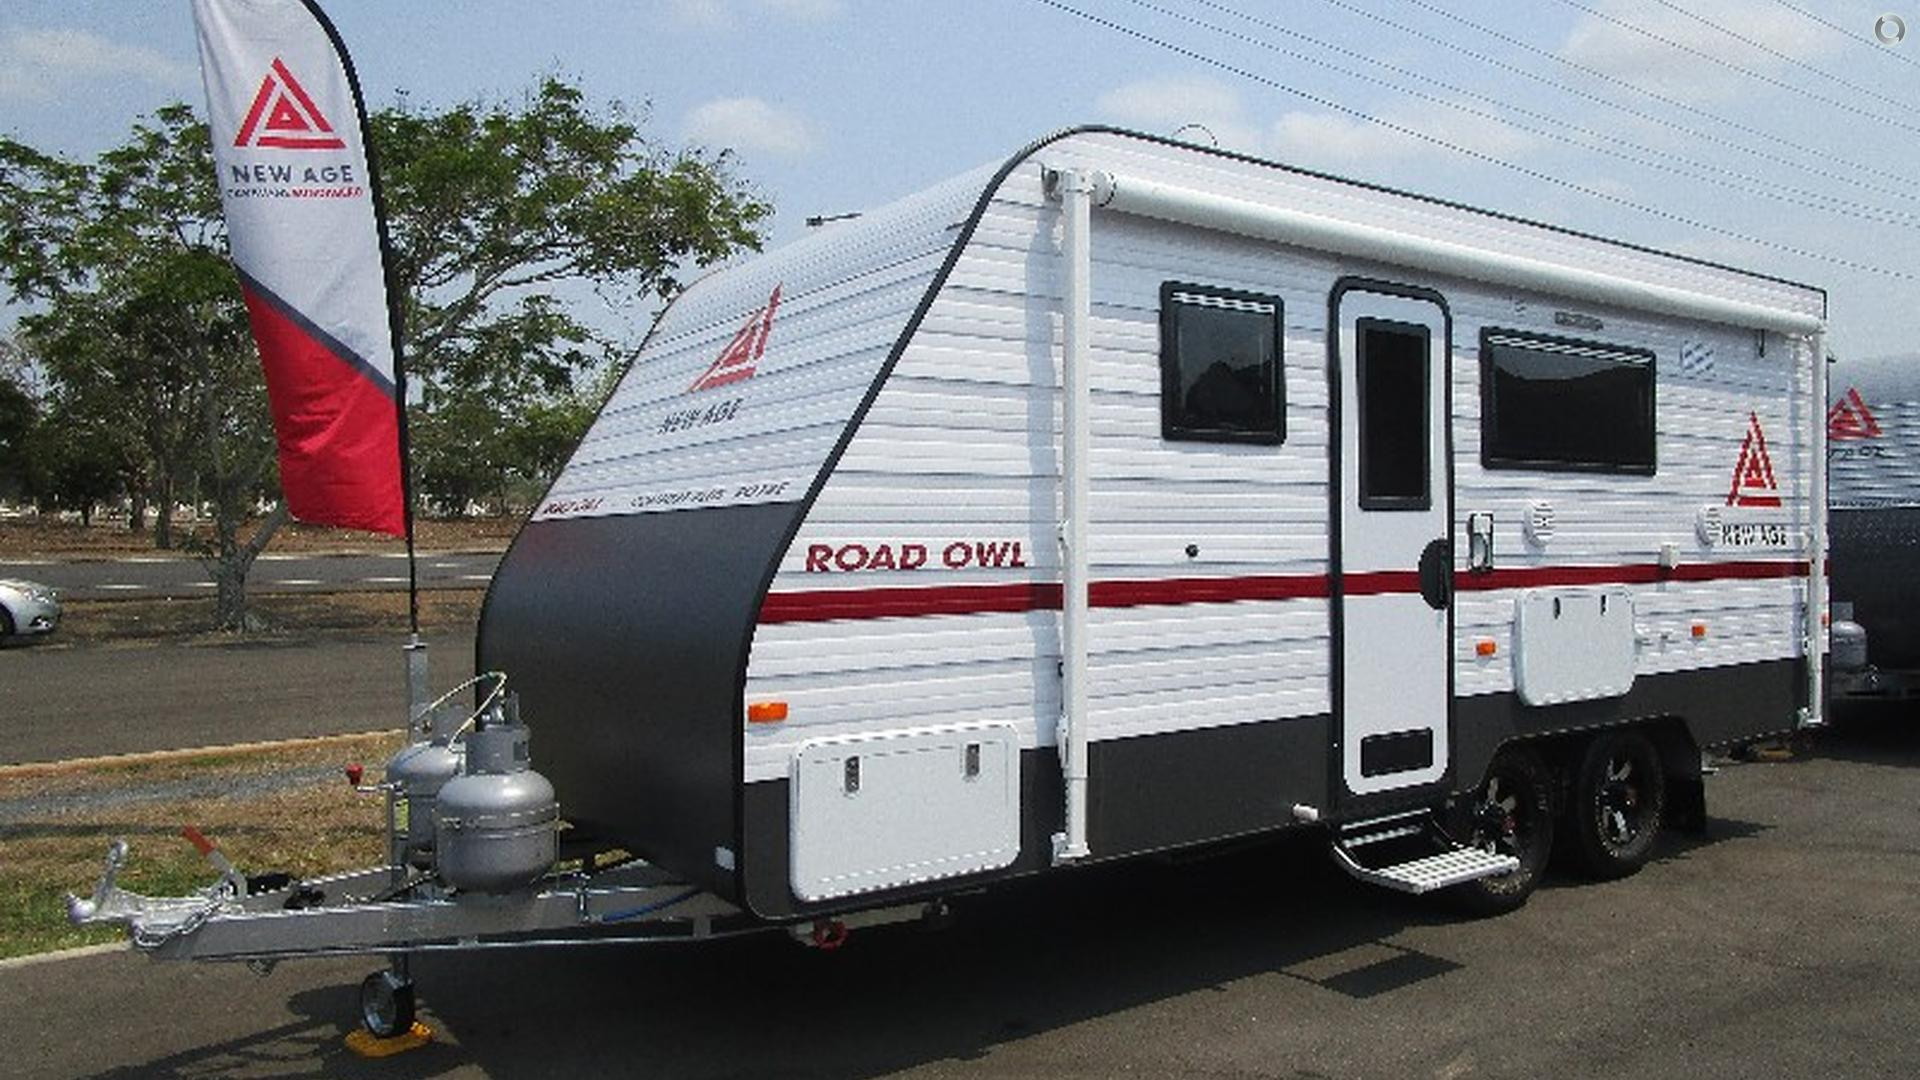 2019 New Age Road Owl   RO18E Comfort Plus Pack